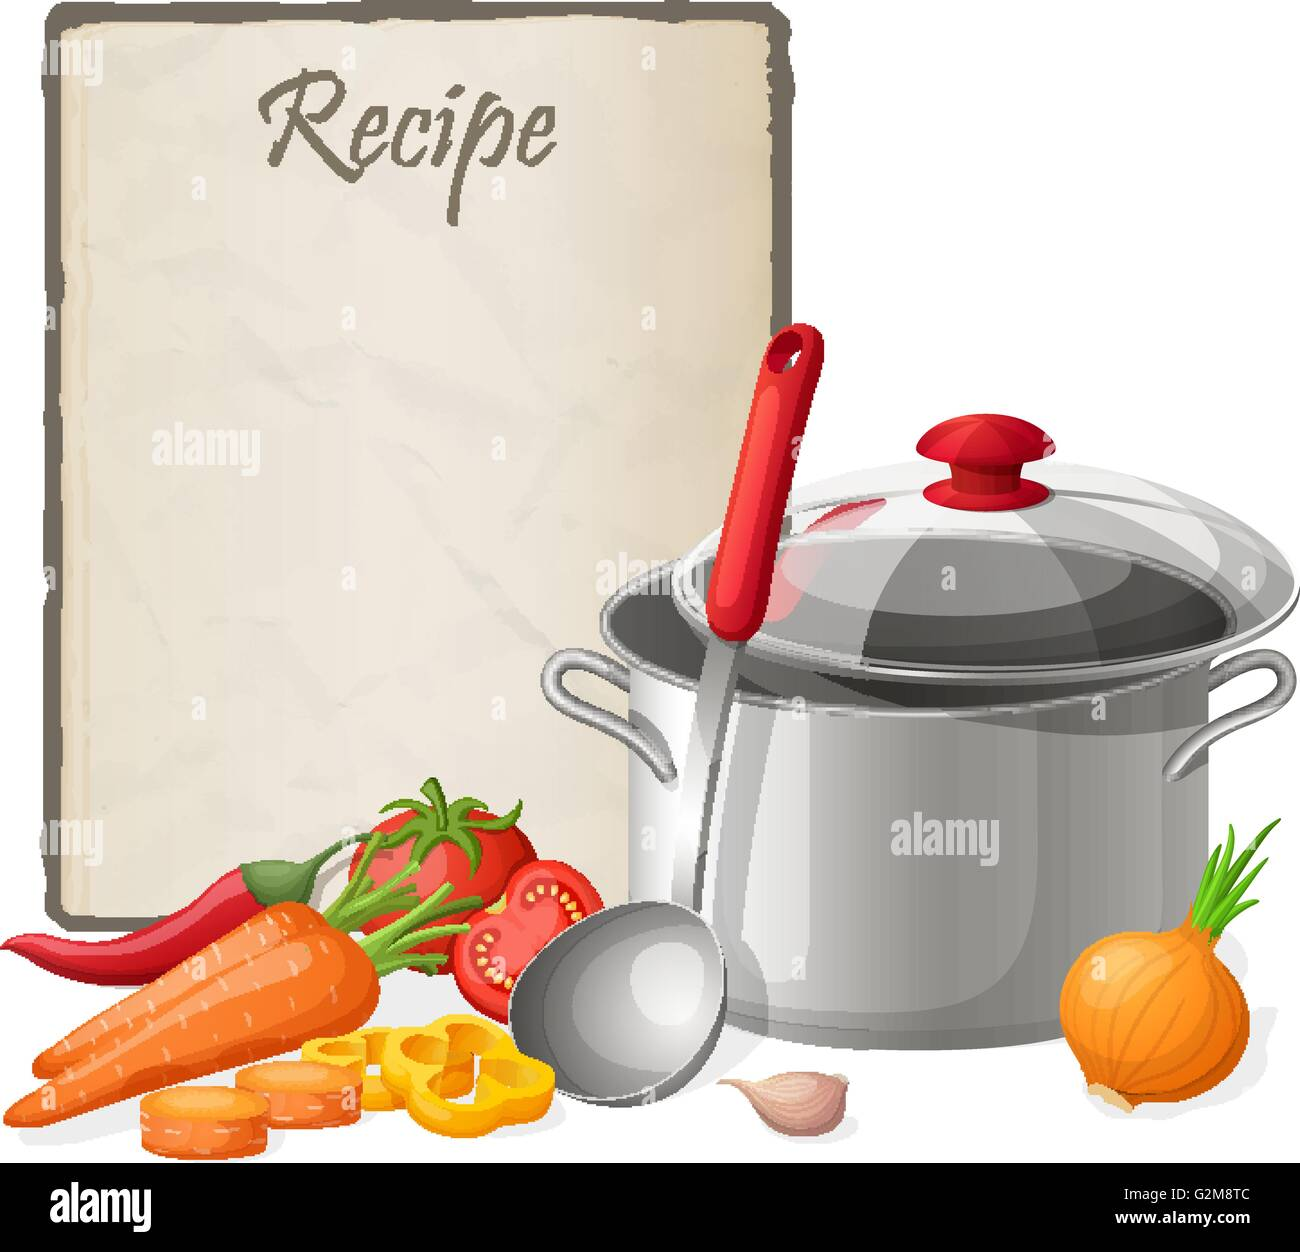 Recipe card kitchen note blank template vector illustration recipe card kitchen note blank template vector illustration cooking notepad on table with kitchenware and vegetables forumfinder Gallery